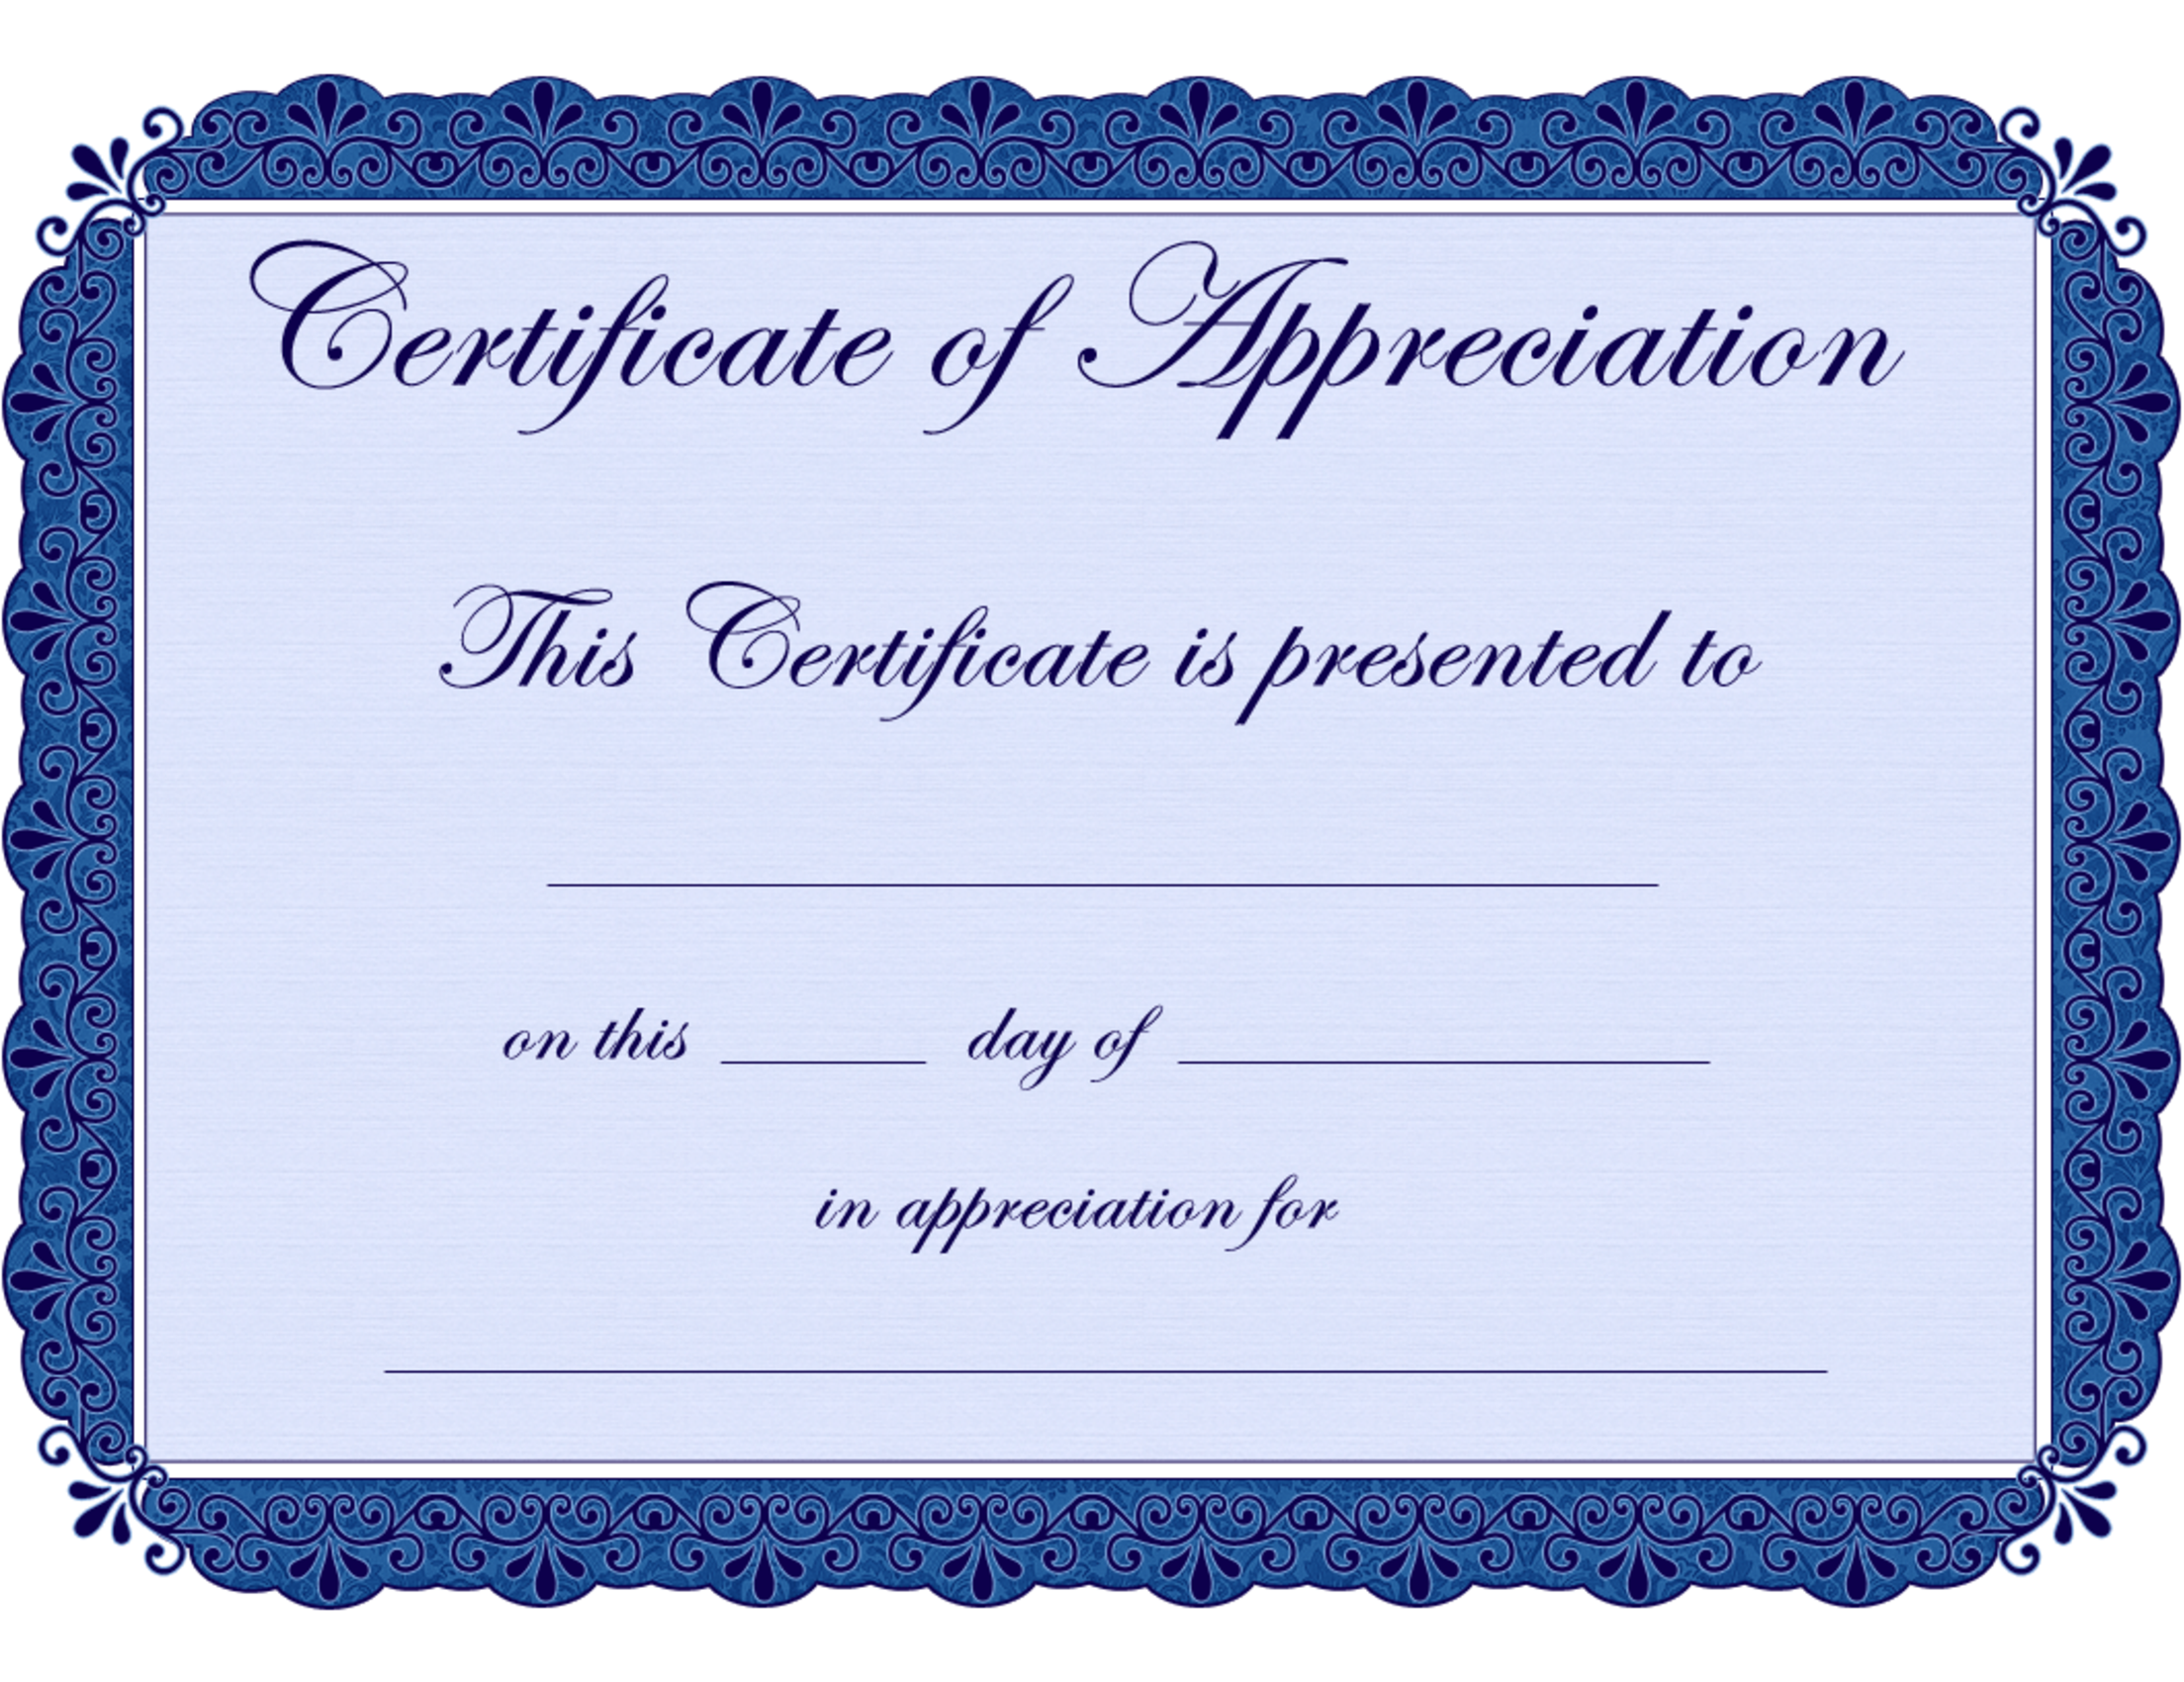 Free printable certificates certificate of appreciation certificate free printable certificates certificate of appreciation certificate yelopaper